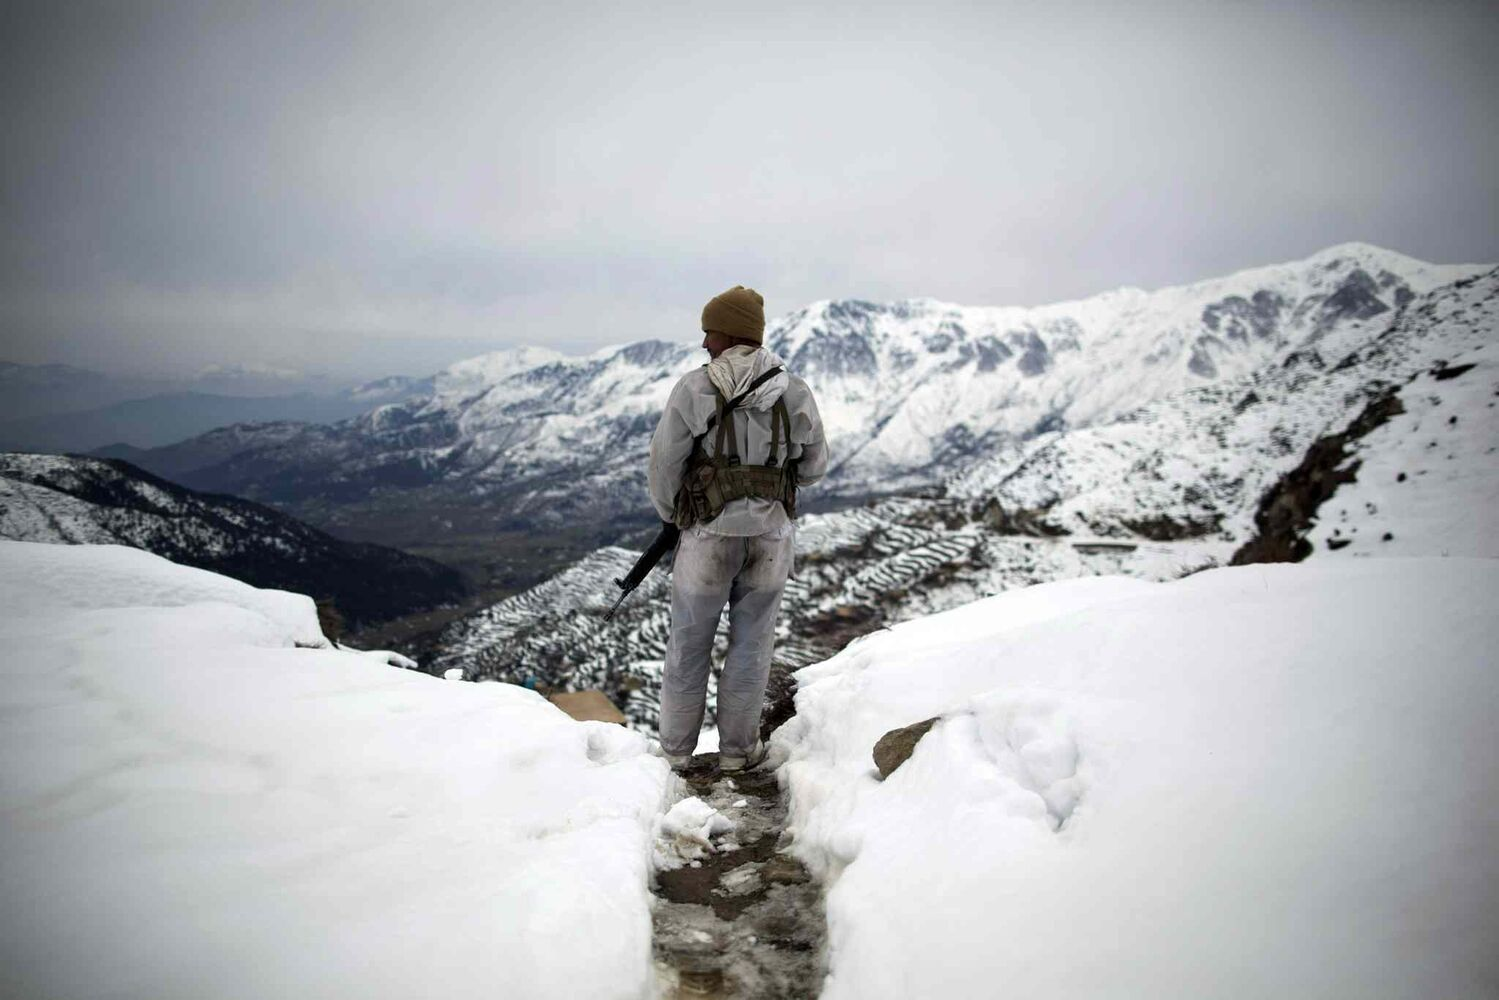 Feb. 17, 2012: A Pakistani Army soldier with the 20th Lancers Armored Regiment stands atop the 8000-foot mountain during a patrol near his outpost, Kalpani Base, in Pakistan's Dir province on the Pakistan-Afghan border.